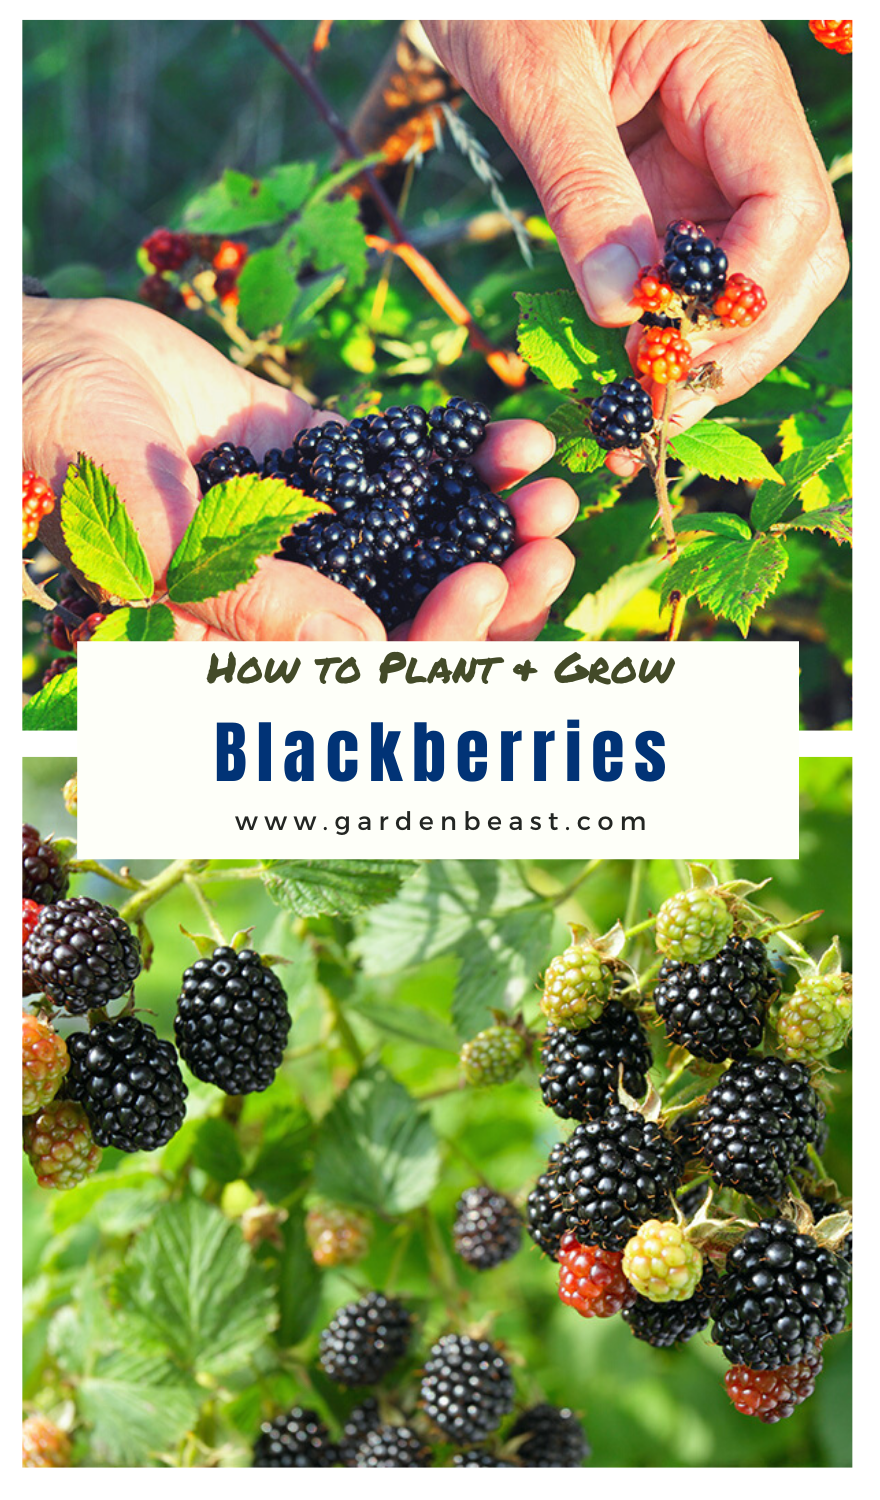 How To Grow Blackberries Tips For Planting Growing Complete Guide In 2020 Growing Blackberries Growing Vegetables In Pots Growing Fruit Trees